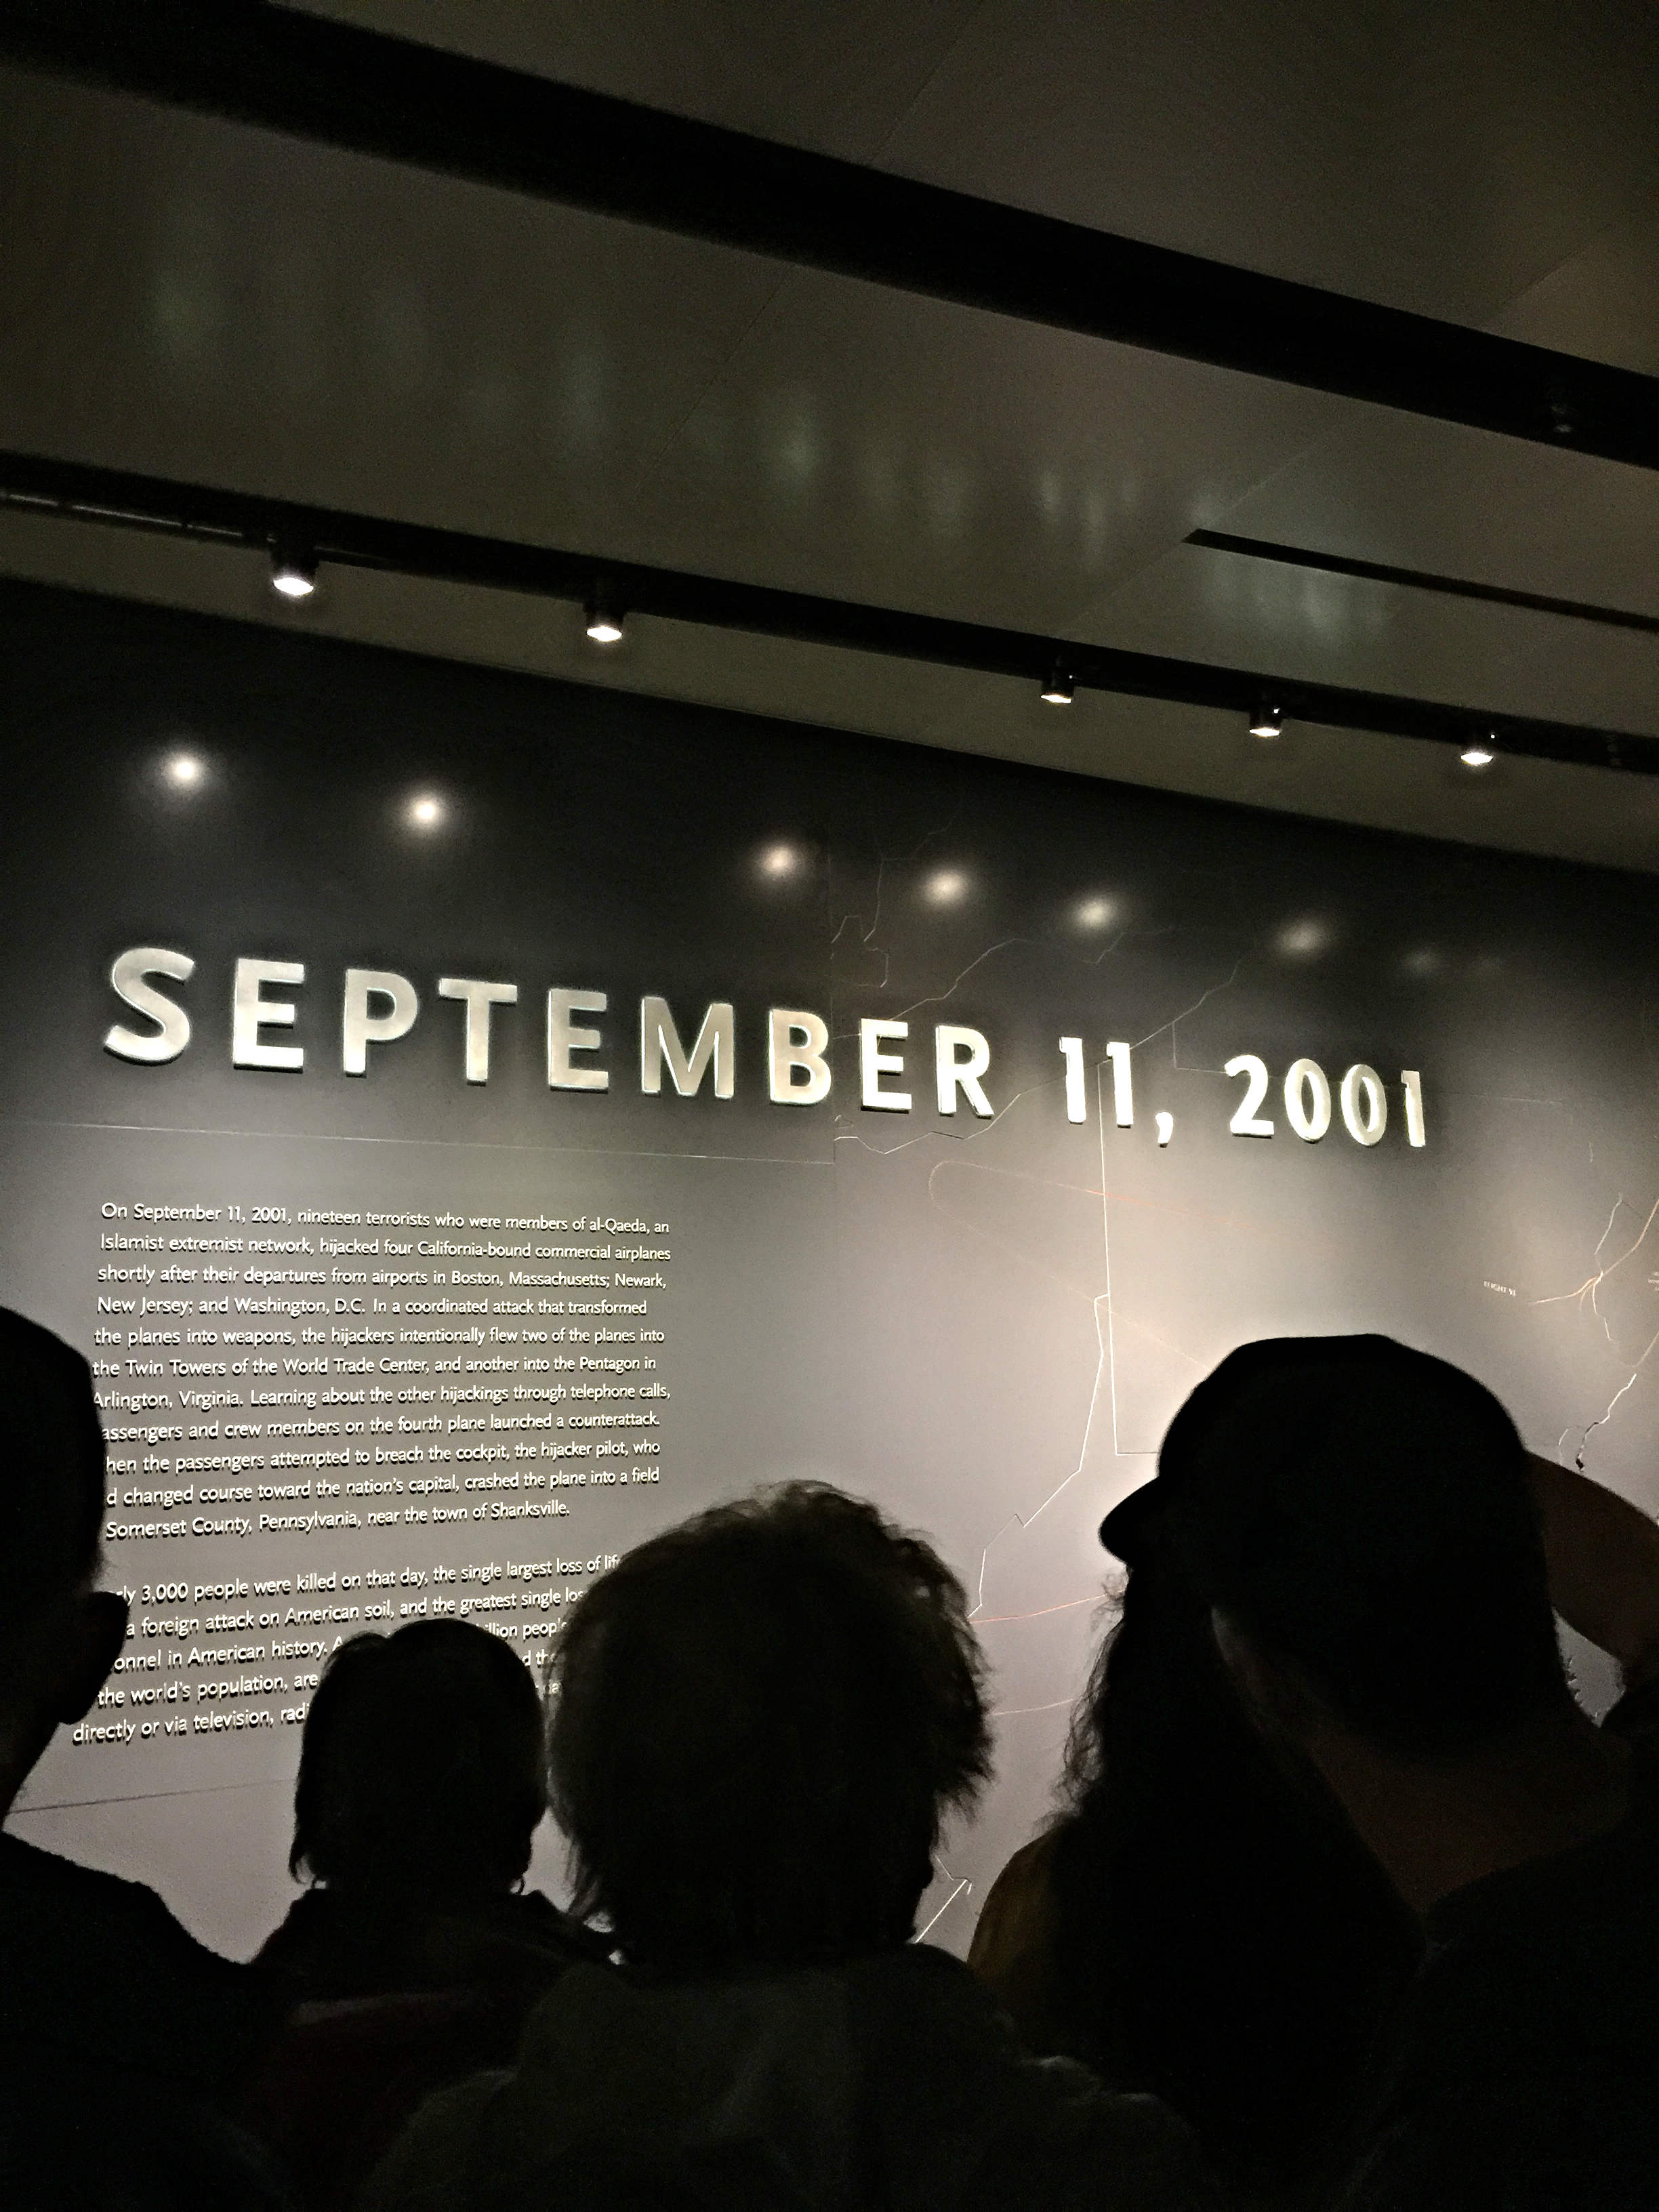 The 9/11 Museum raises many questions about how cultural institutionsattempt to memorialize violent and difficult to comprehendhistorical events.